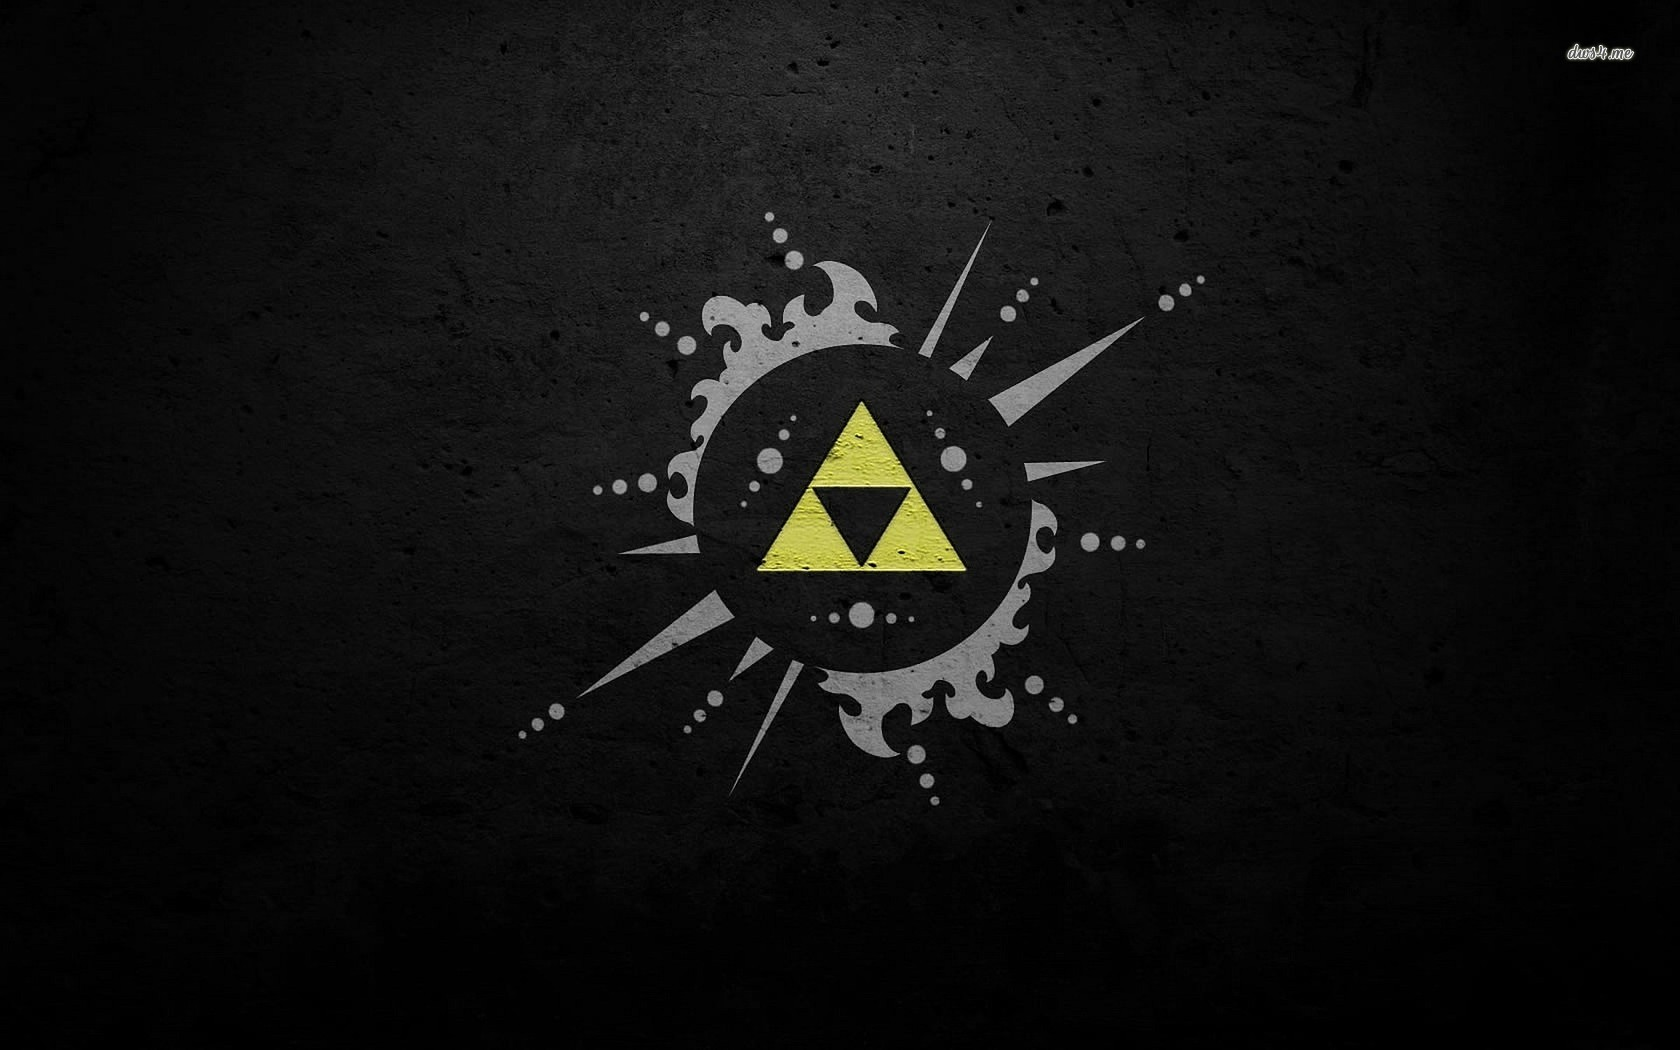 Legend Of Zelda Ocarina Of Time Mobile Phone Wallpapers 1680x1050